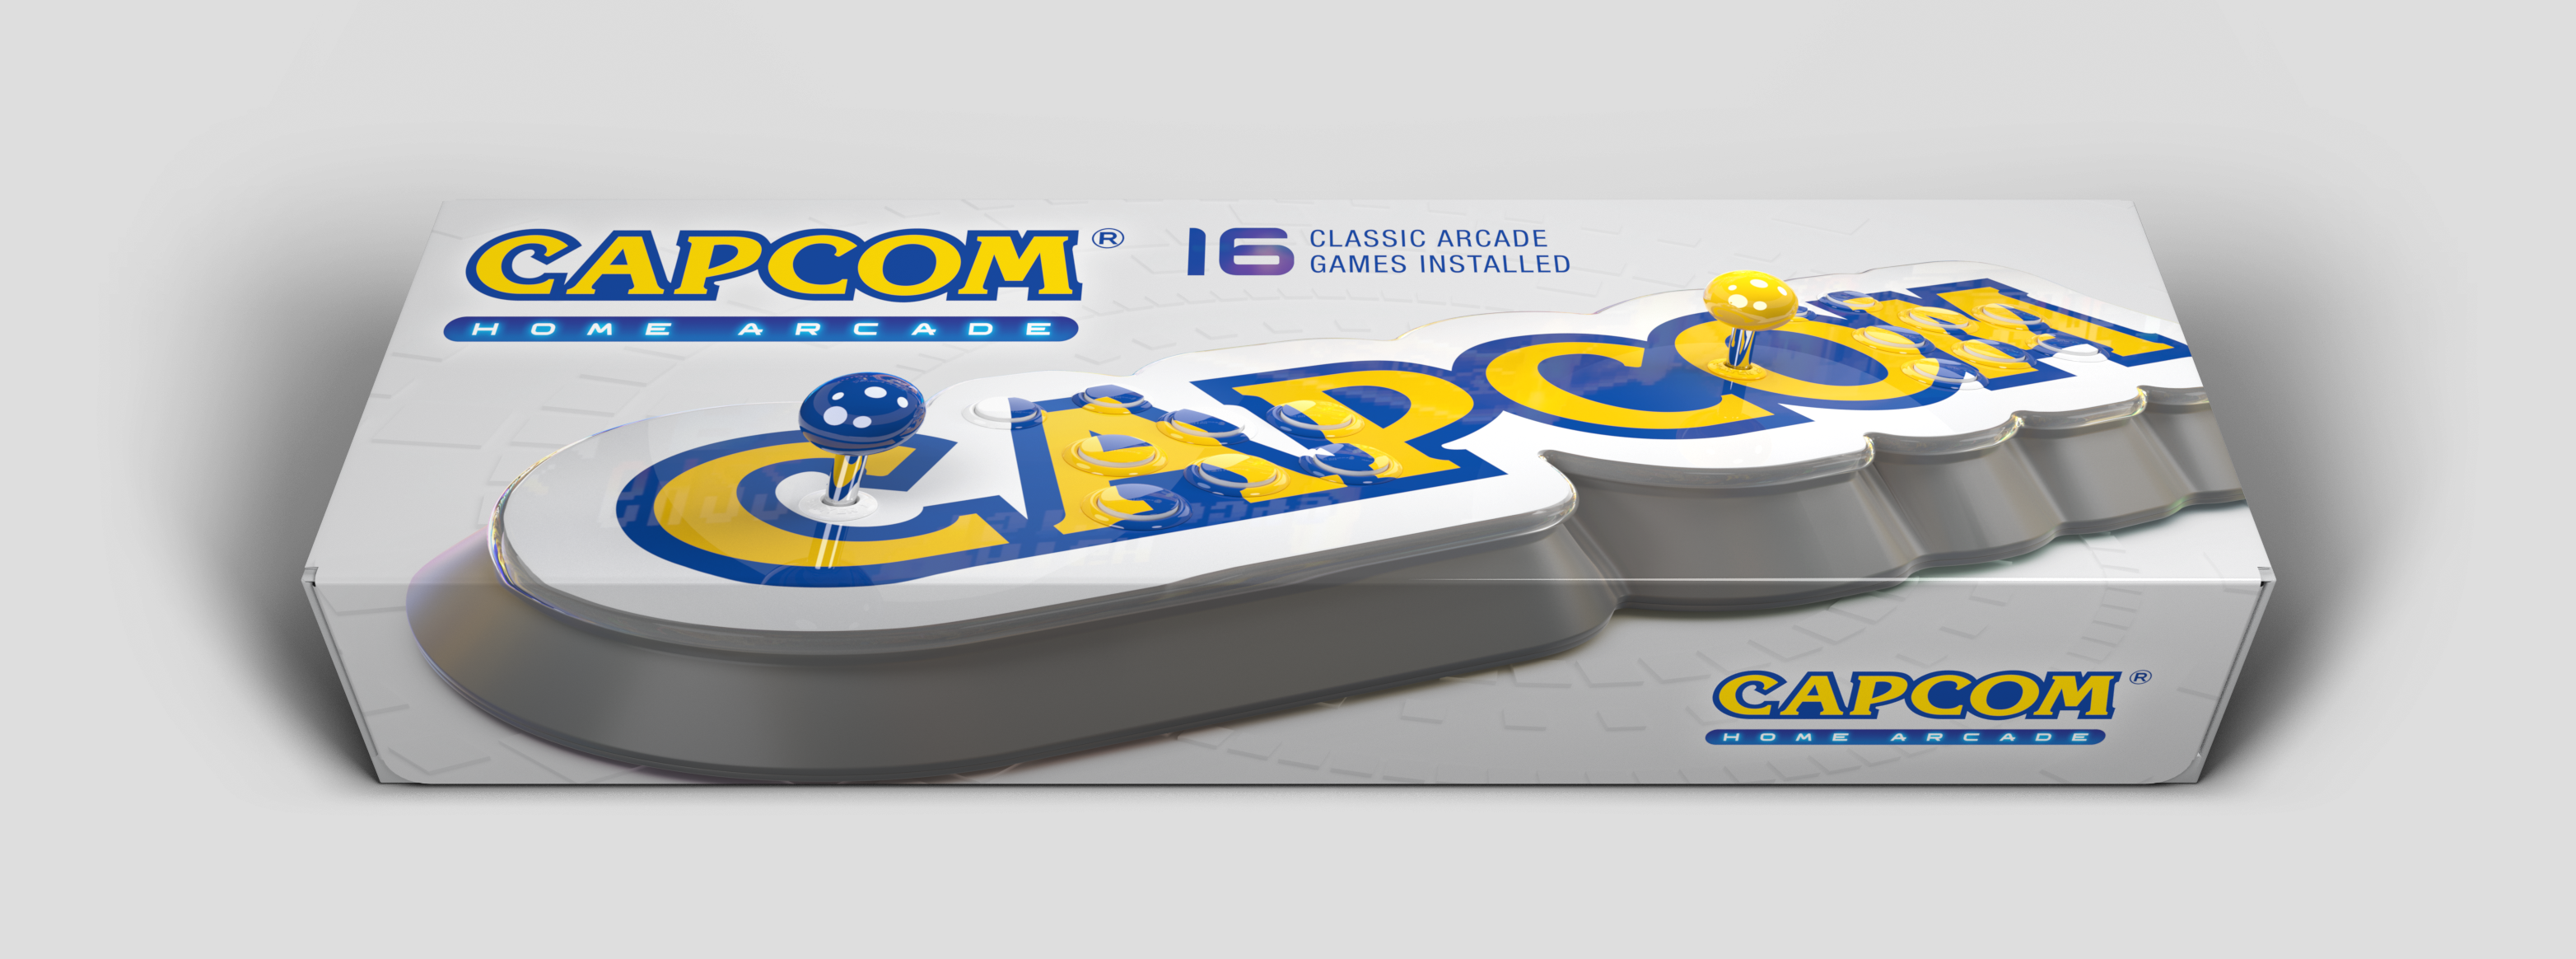 CAPCOM HOME ARCADE – (16 GAMES INCLUDED)